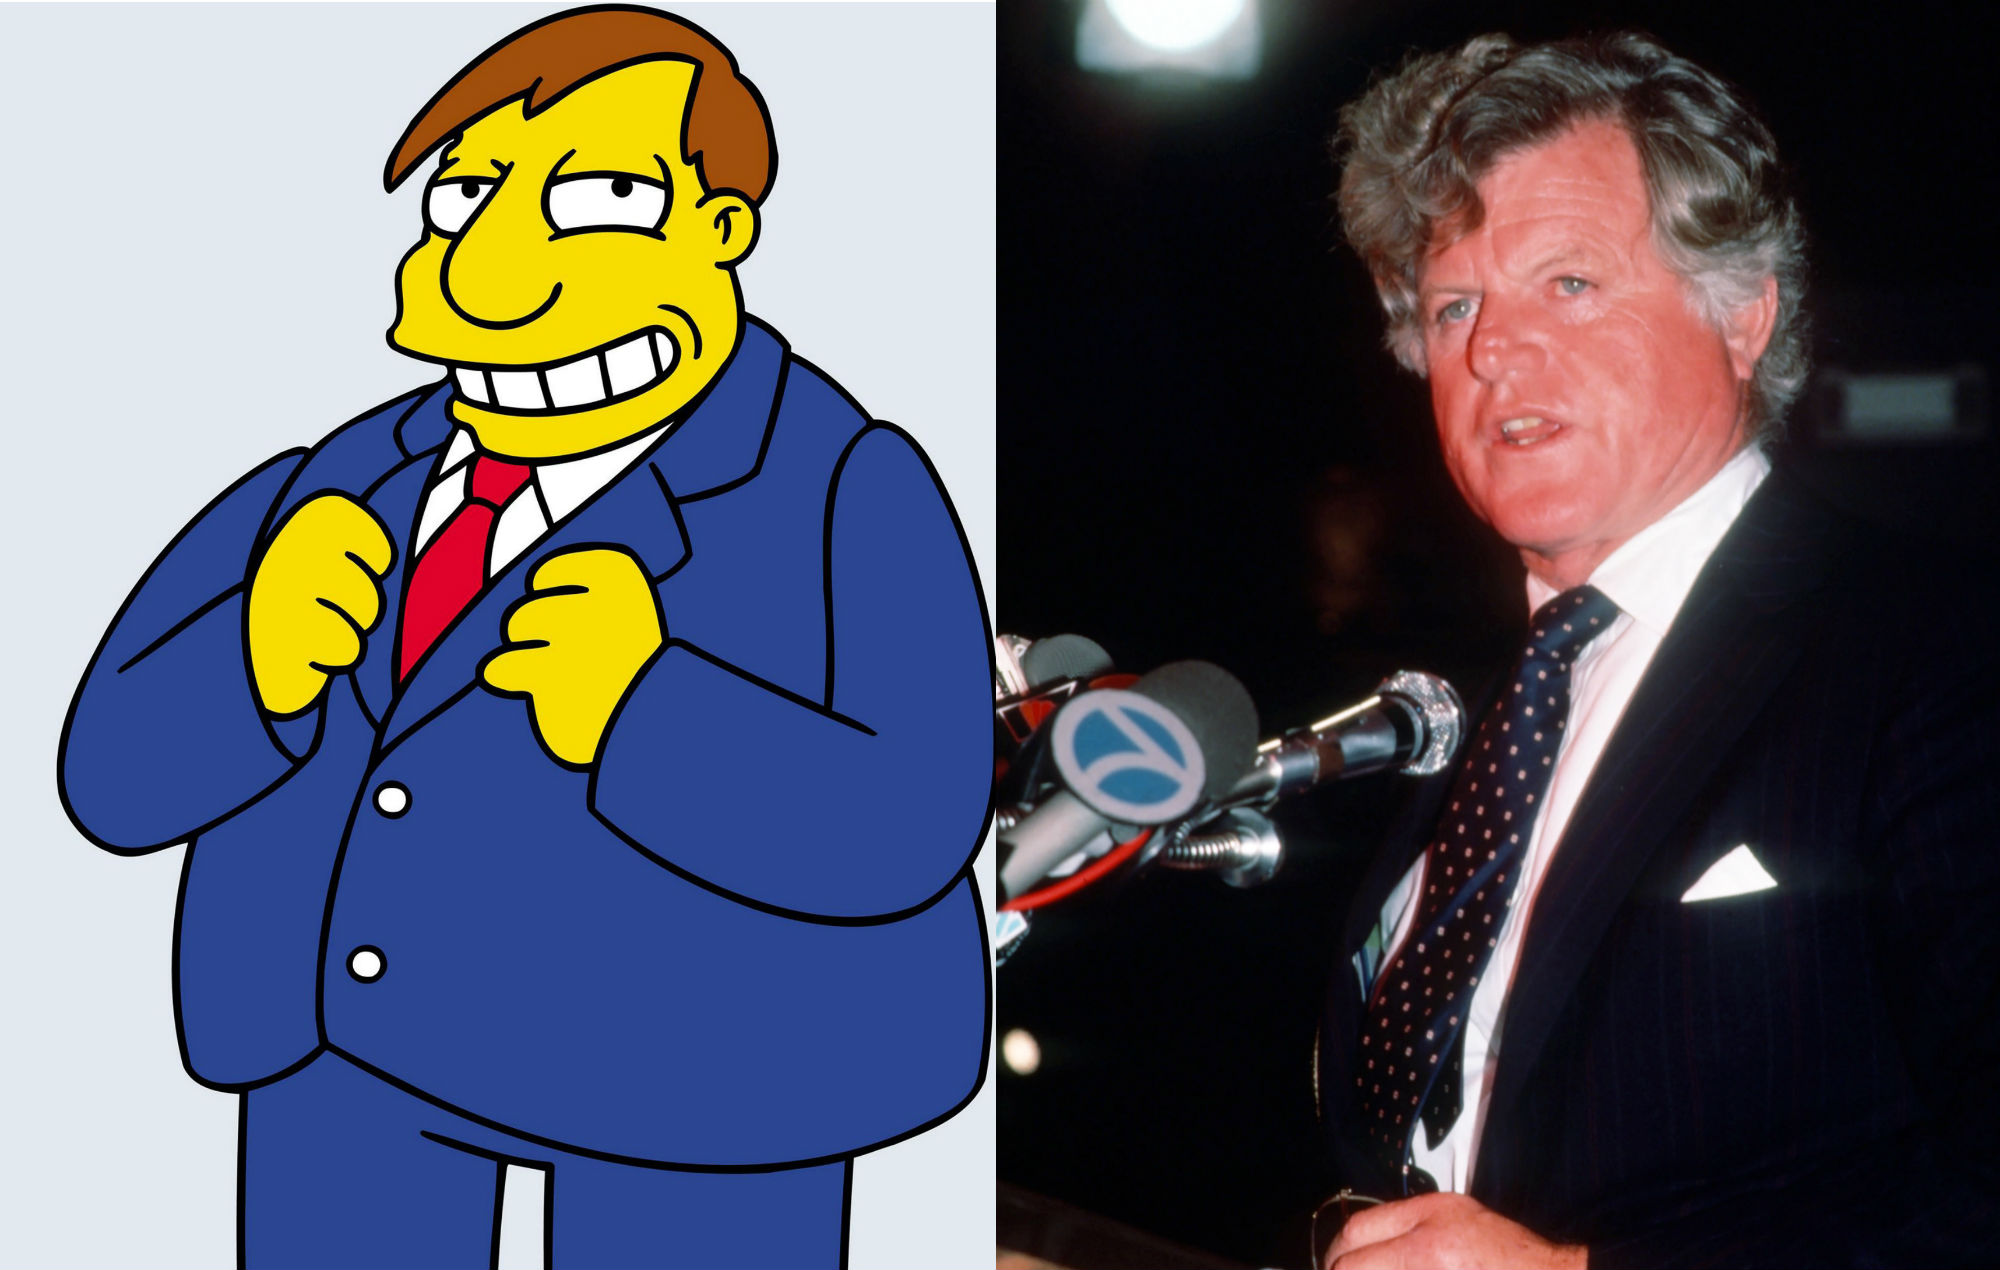 Mayor Quimby / Ted Kennedy The Simpsons